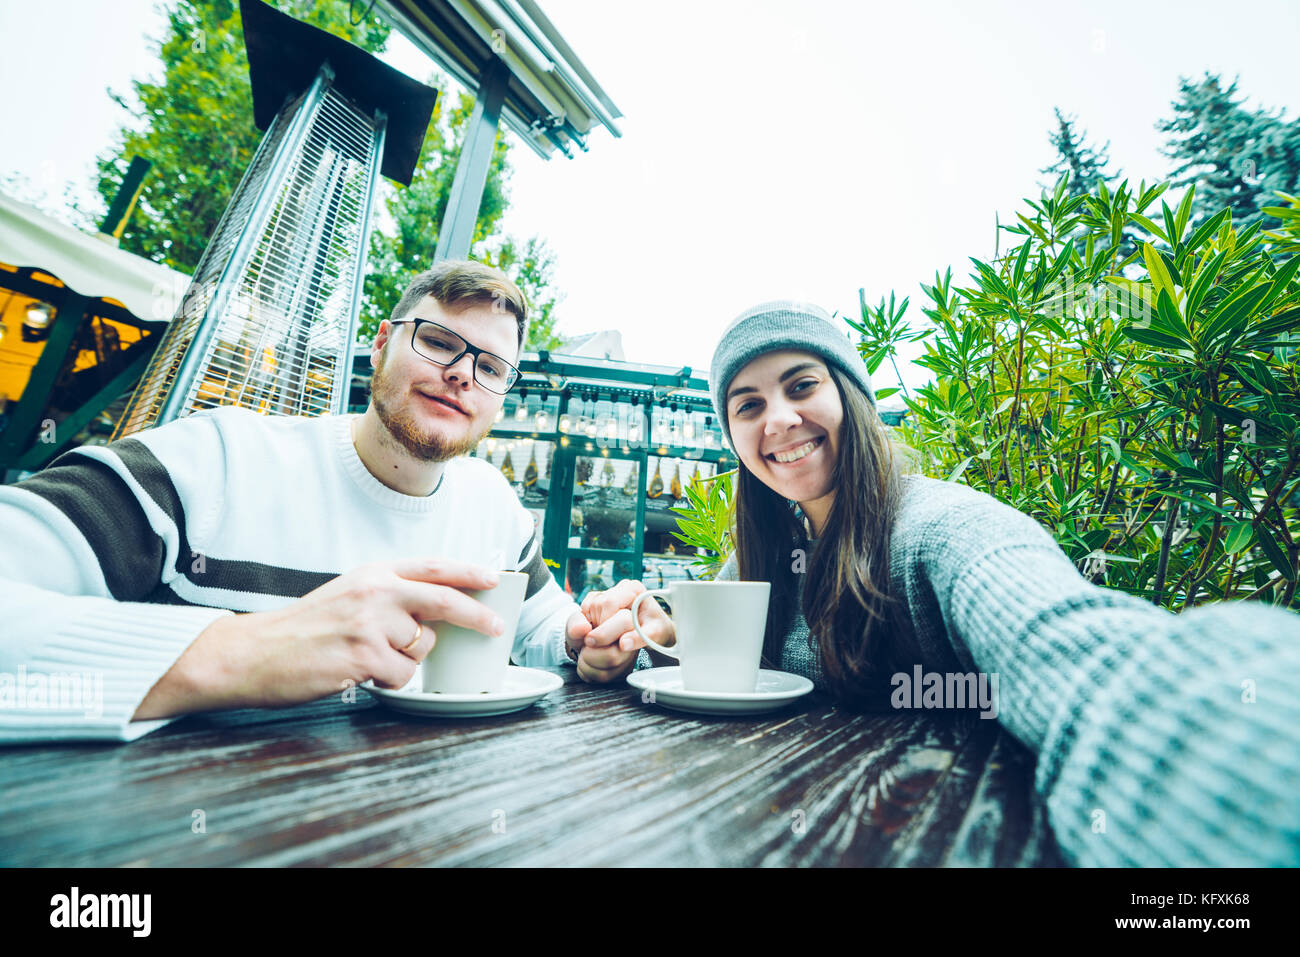 couple eating in cafe outside - Stock Image